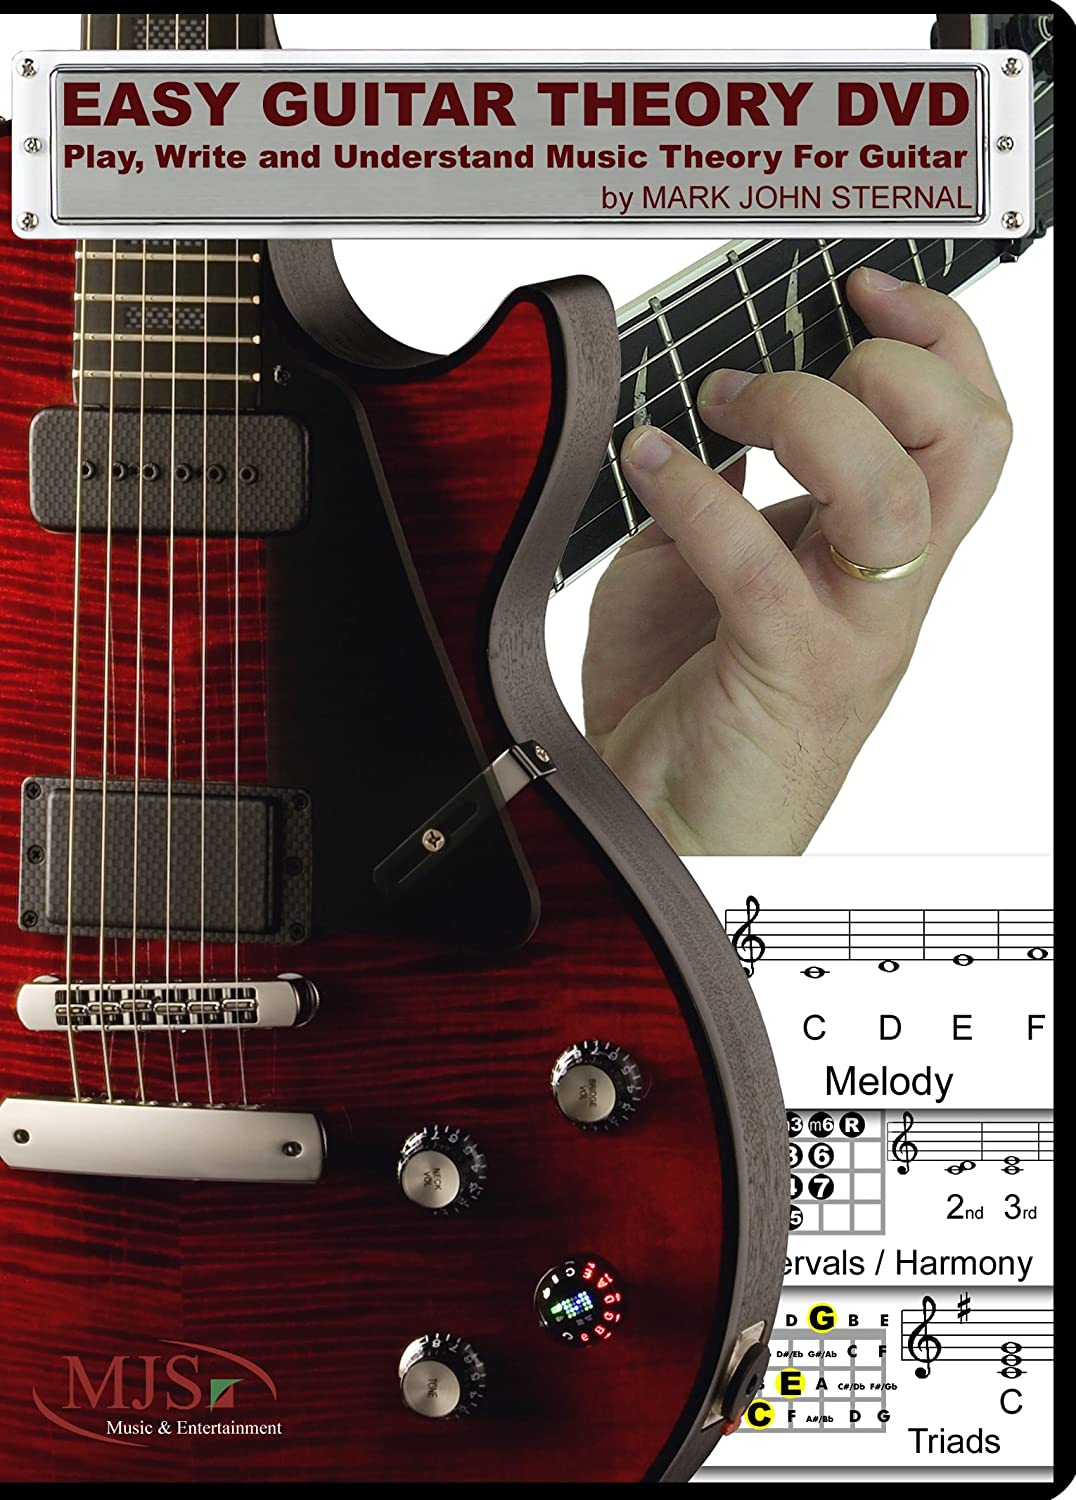 Amazon.com: EASY GUITAR THEORY DVD - Play, Write and Understand ...